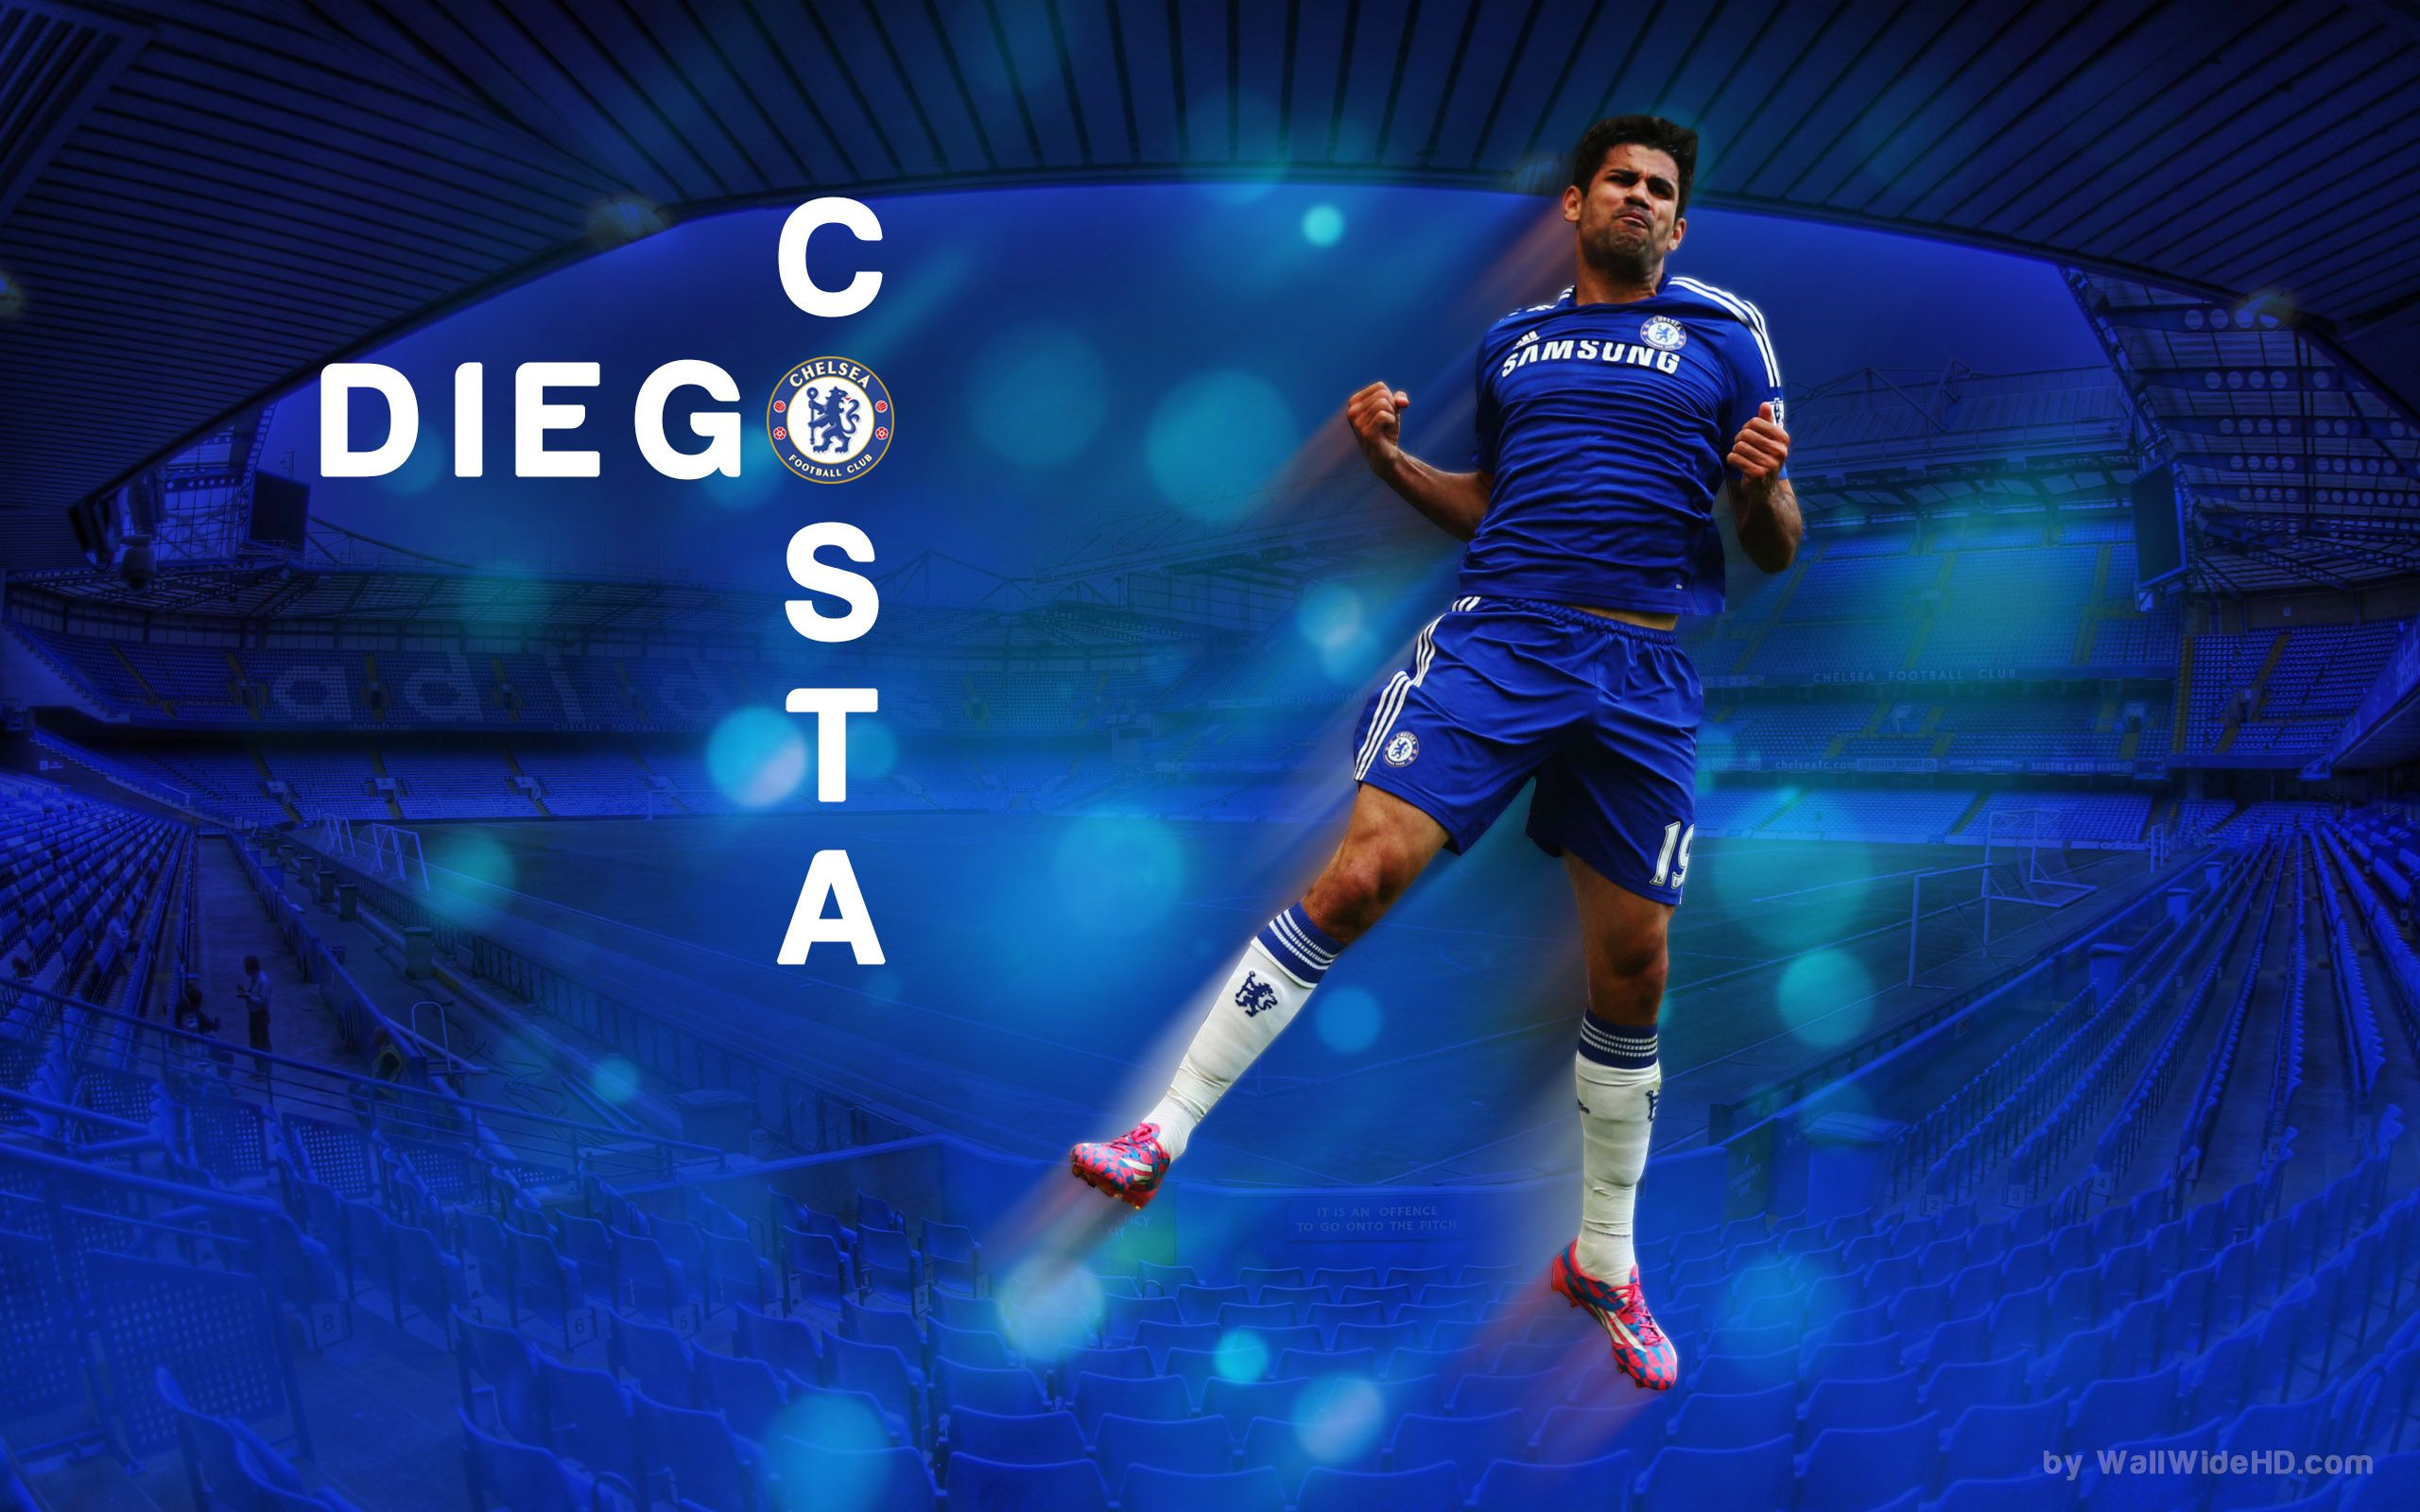 diego costa high resolution wallpapers download httpwallucky comdiego